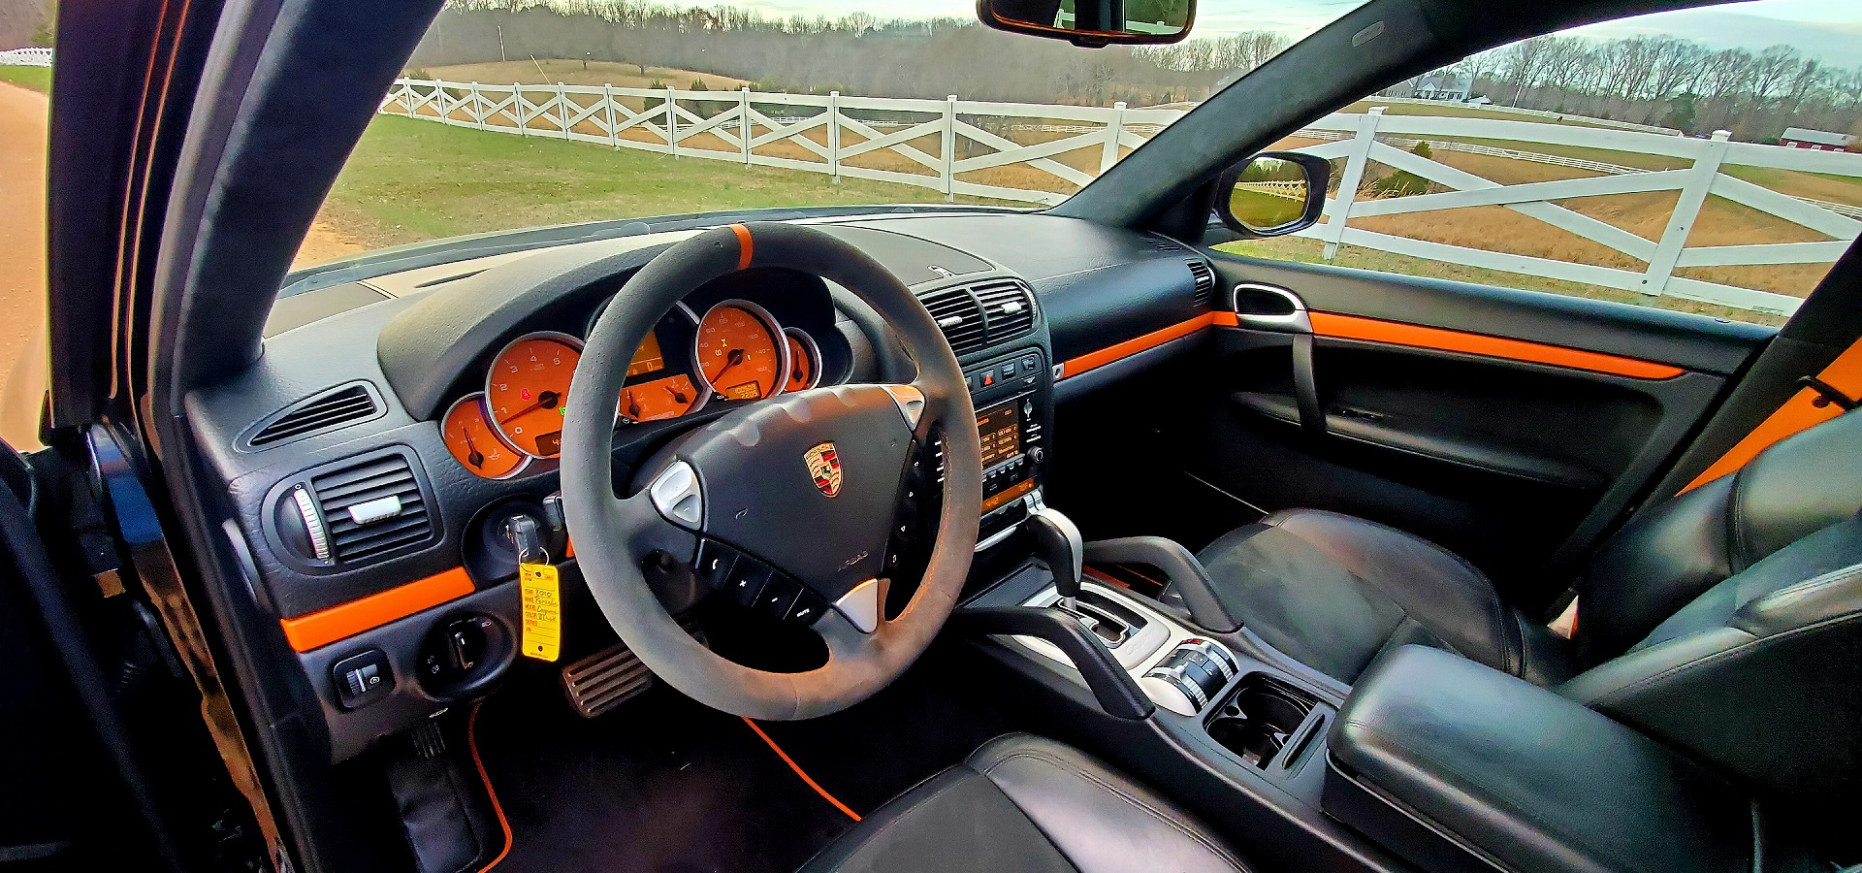 Release Date and Concept Porsche Cayenne Model